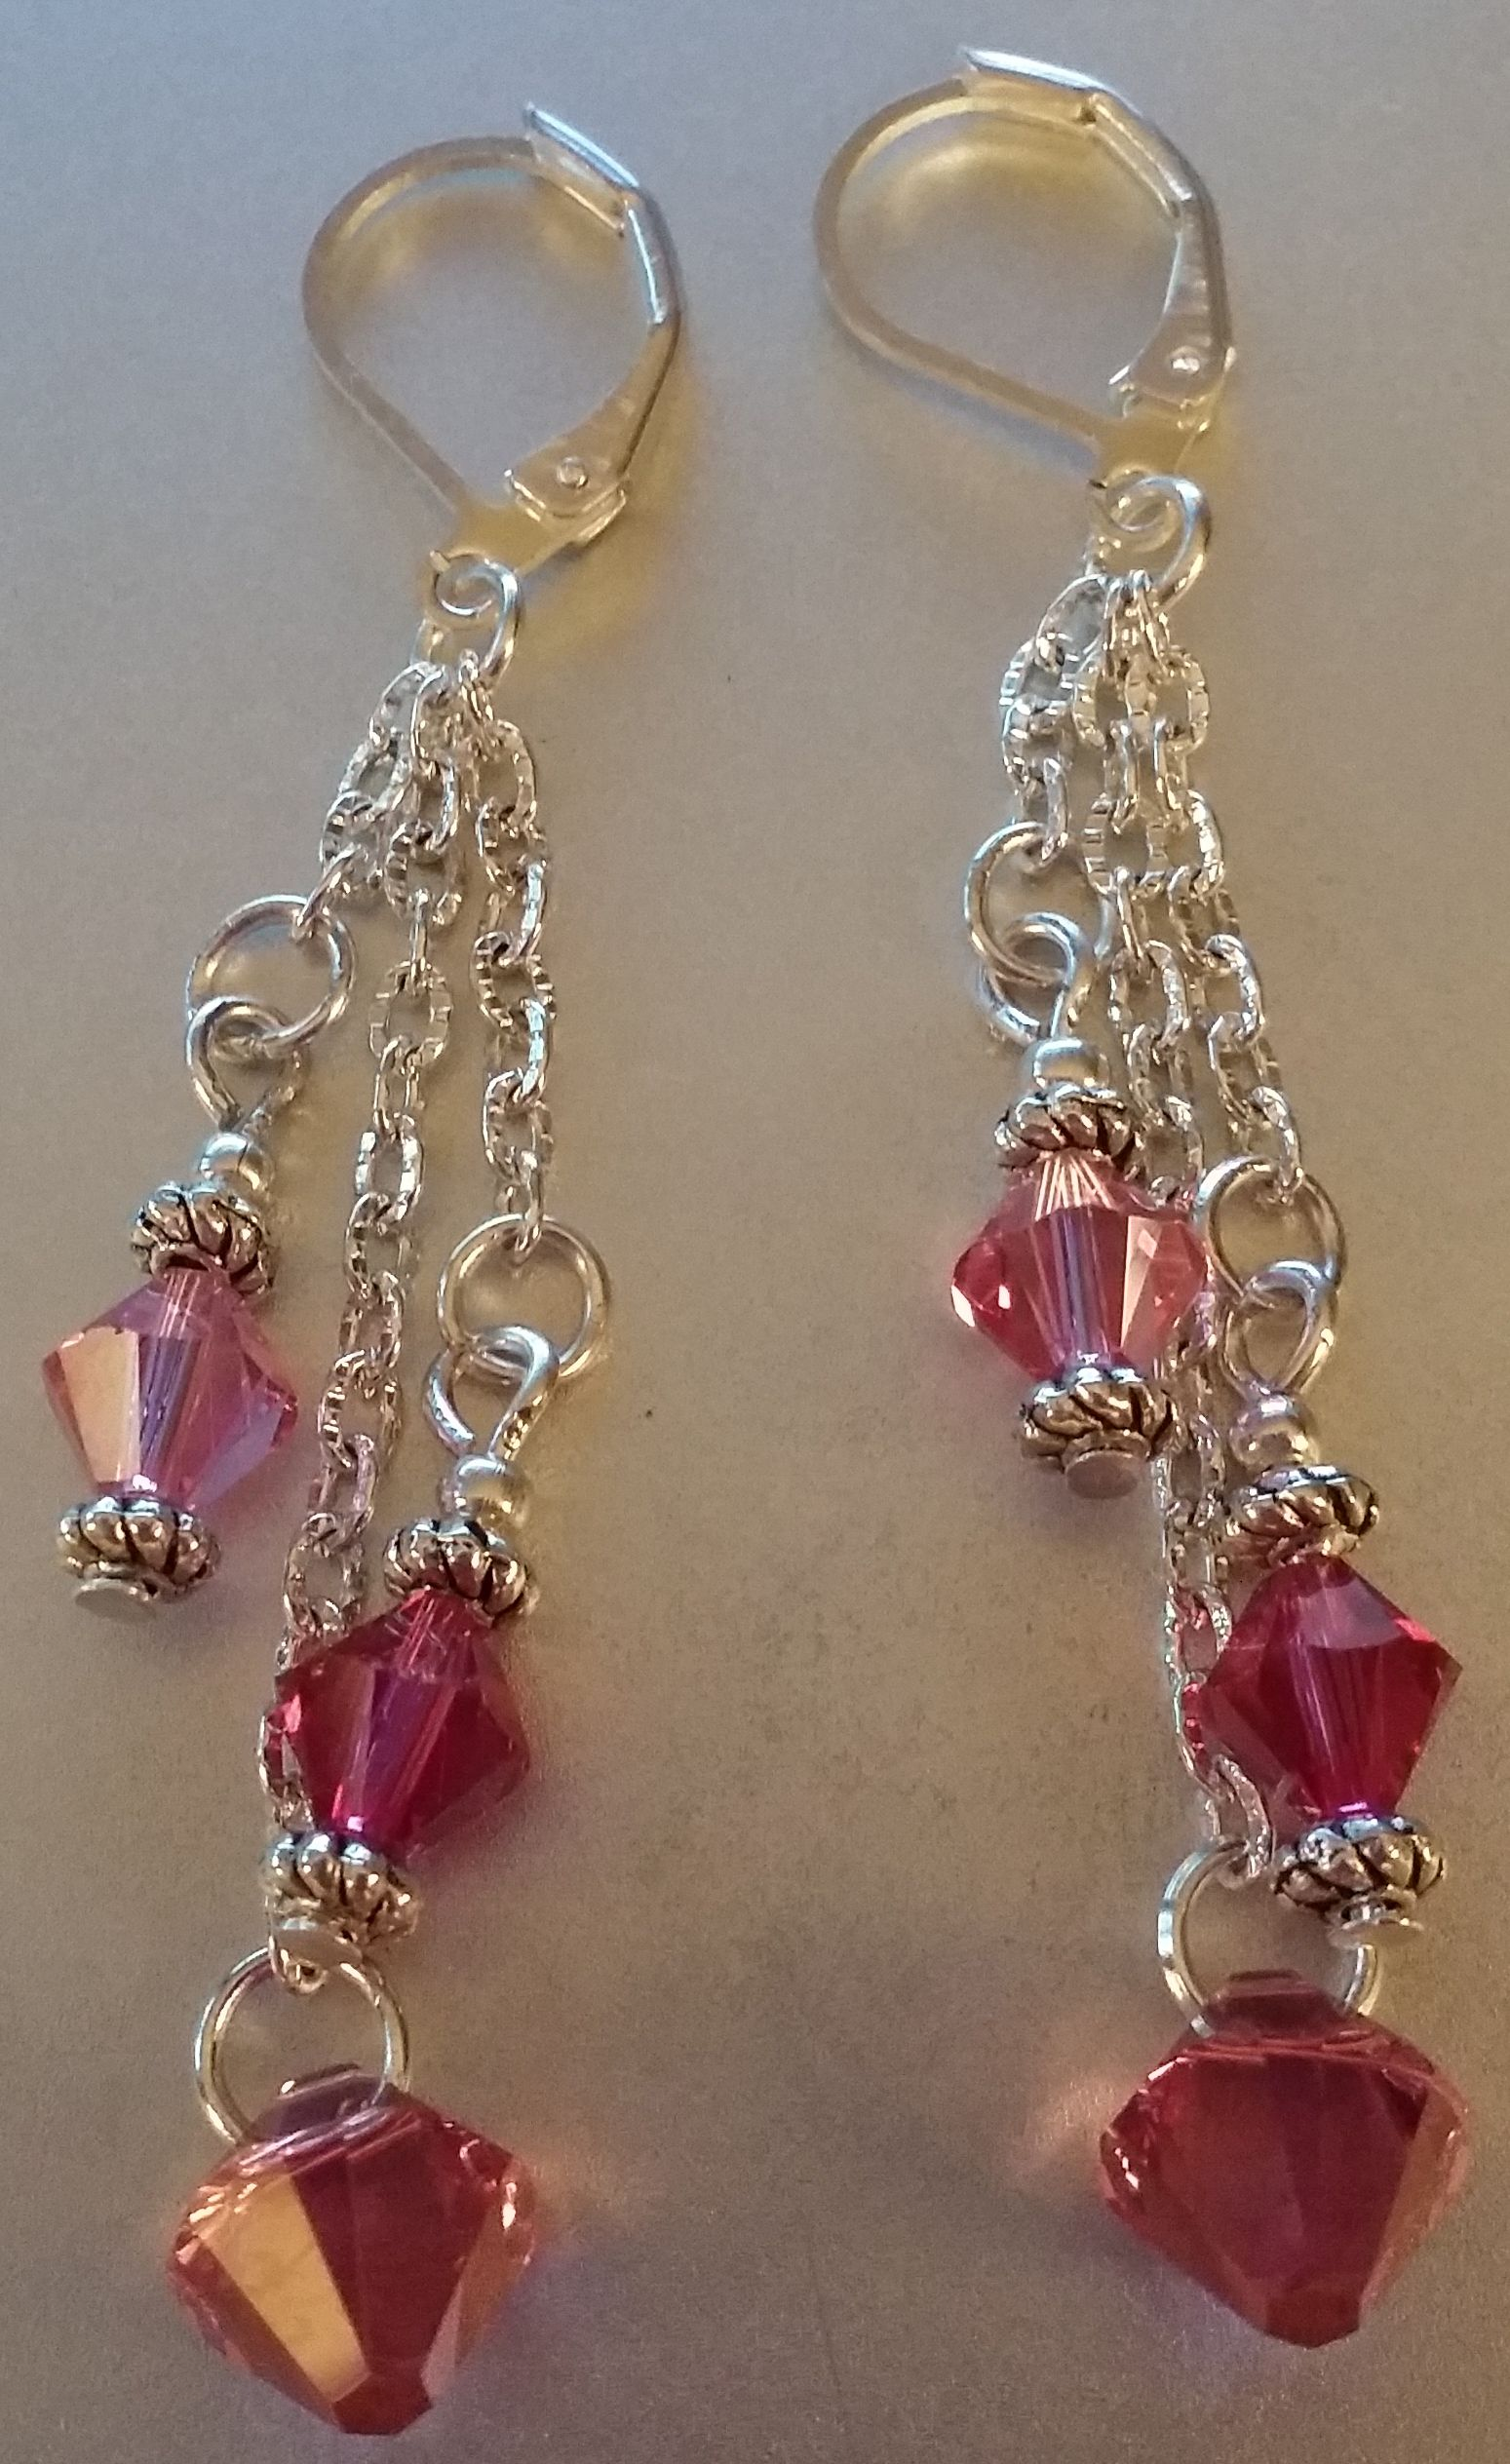 Rose and pink bicones make this pair of earrings sparkle! Priced at $20